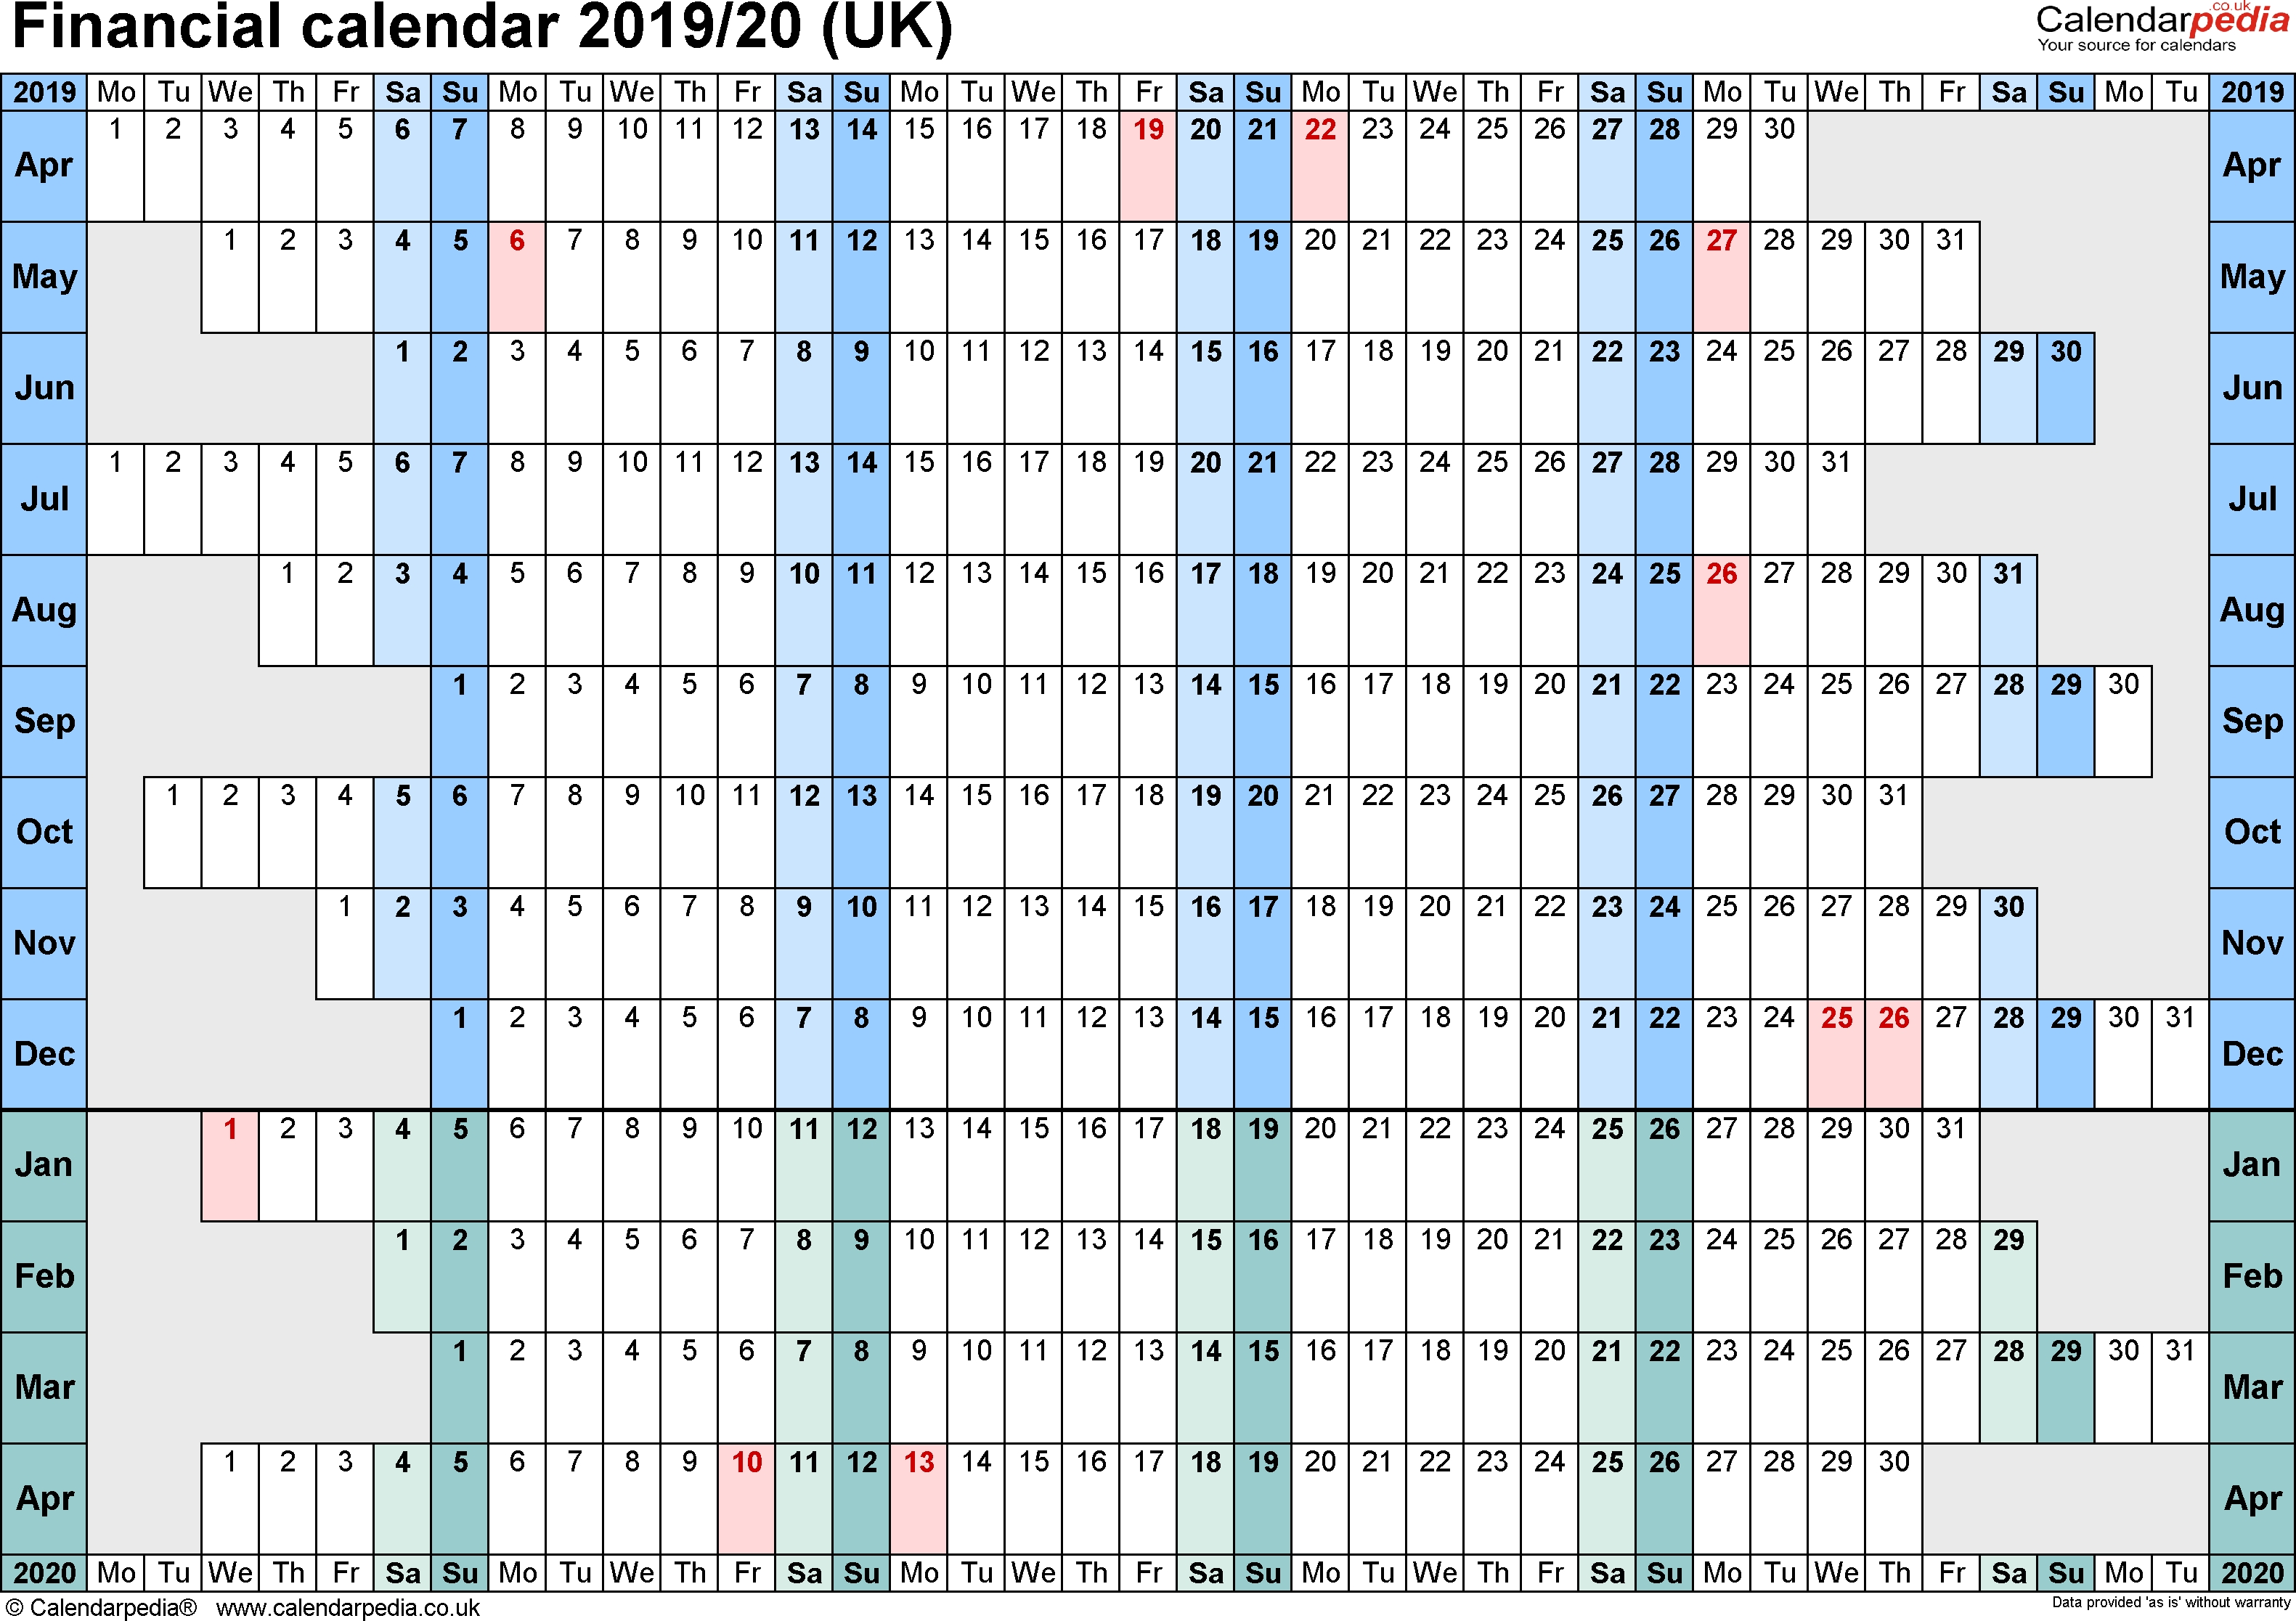 Financial Calendars 2019/20 (Uk) In Pdf Format throughout Tax Calendar For 2019/2020